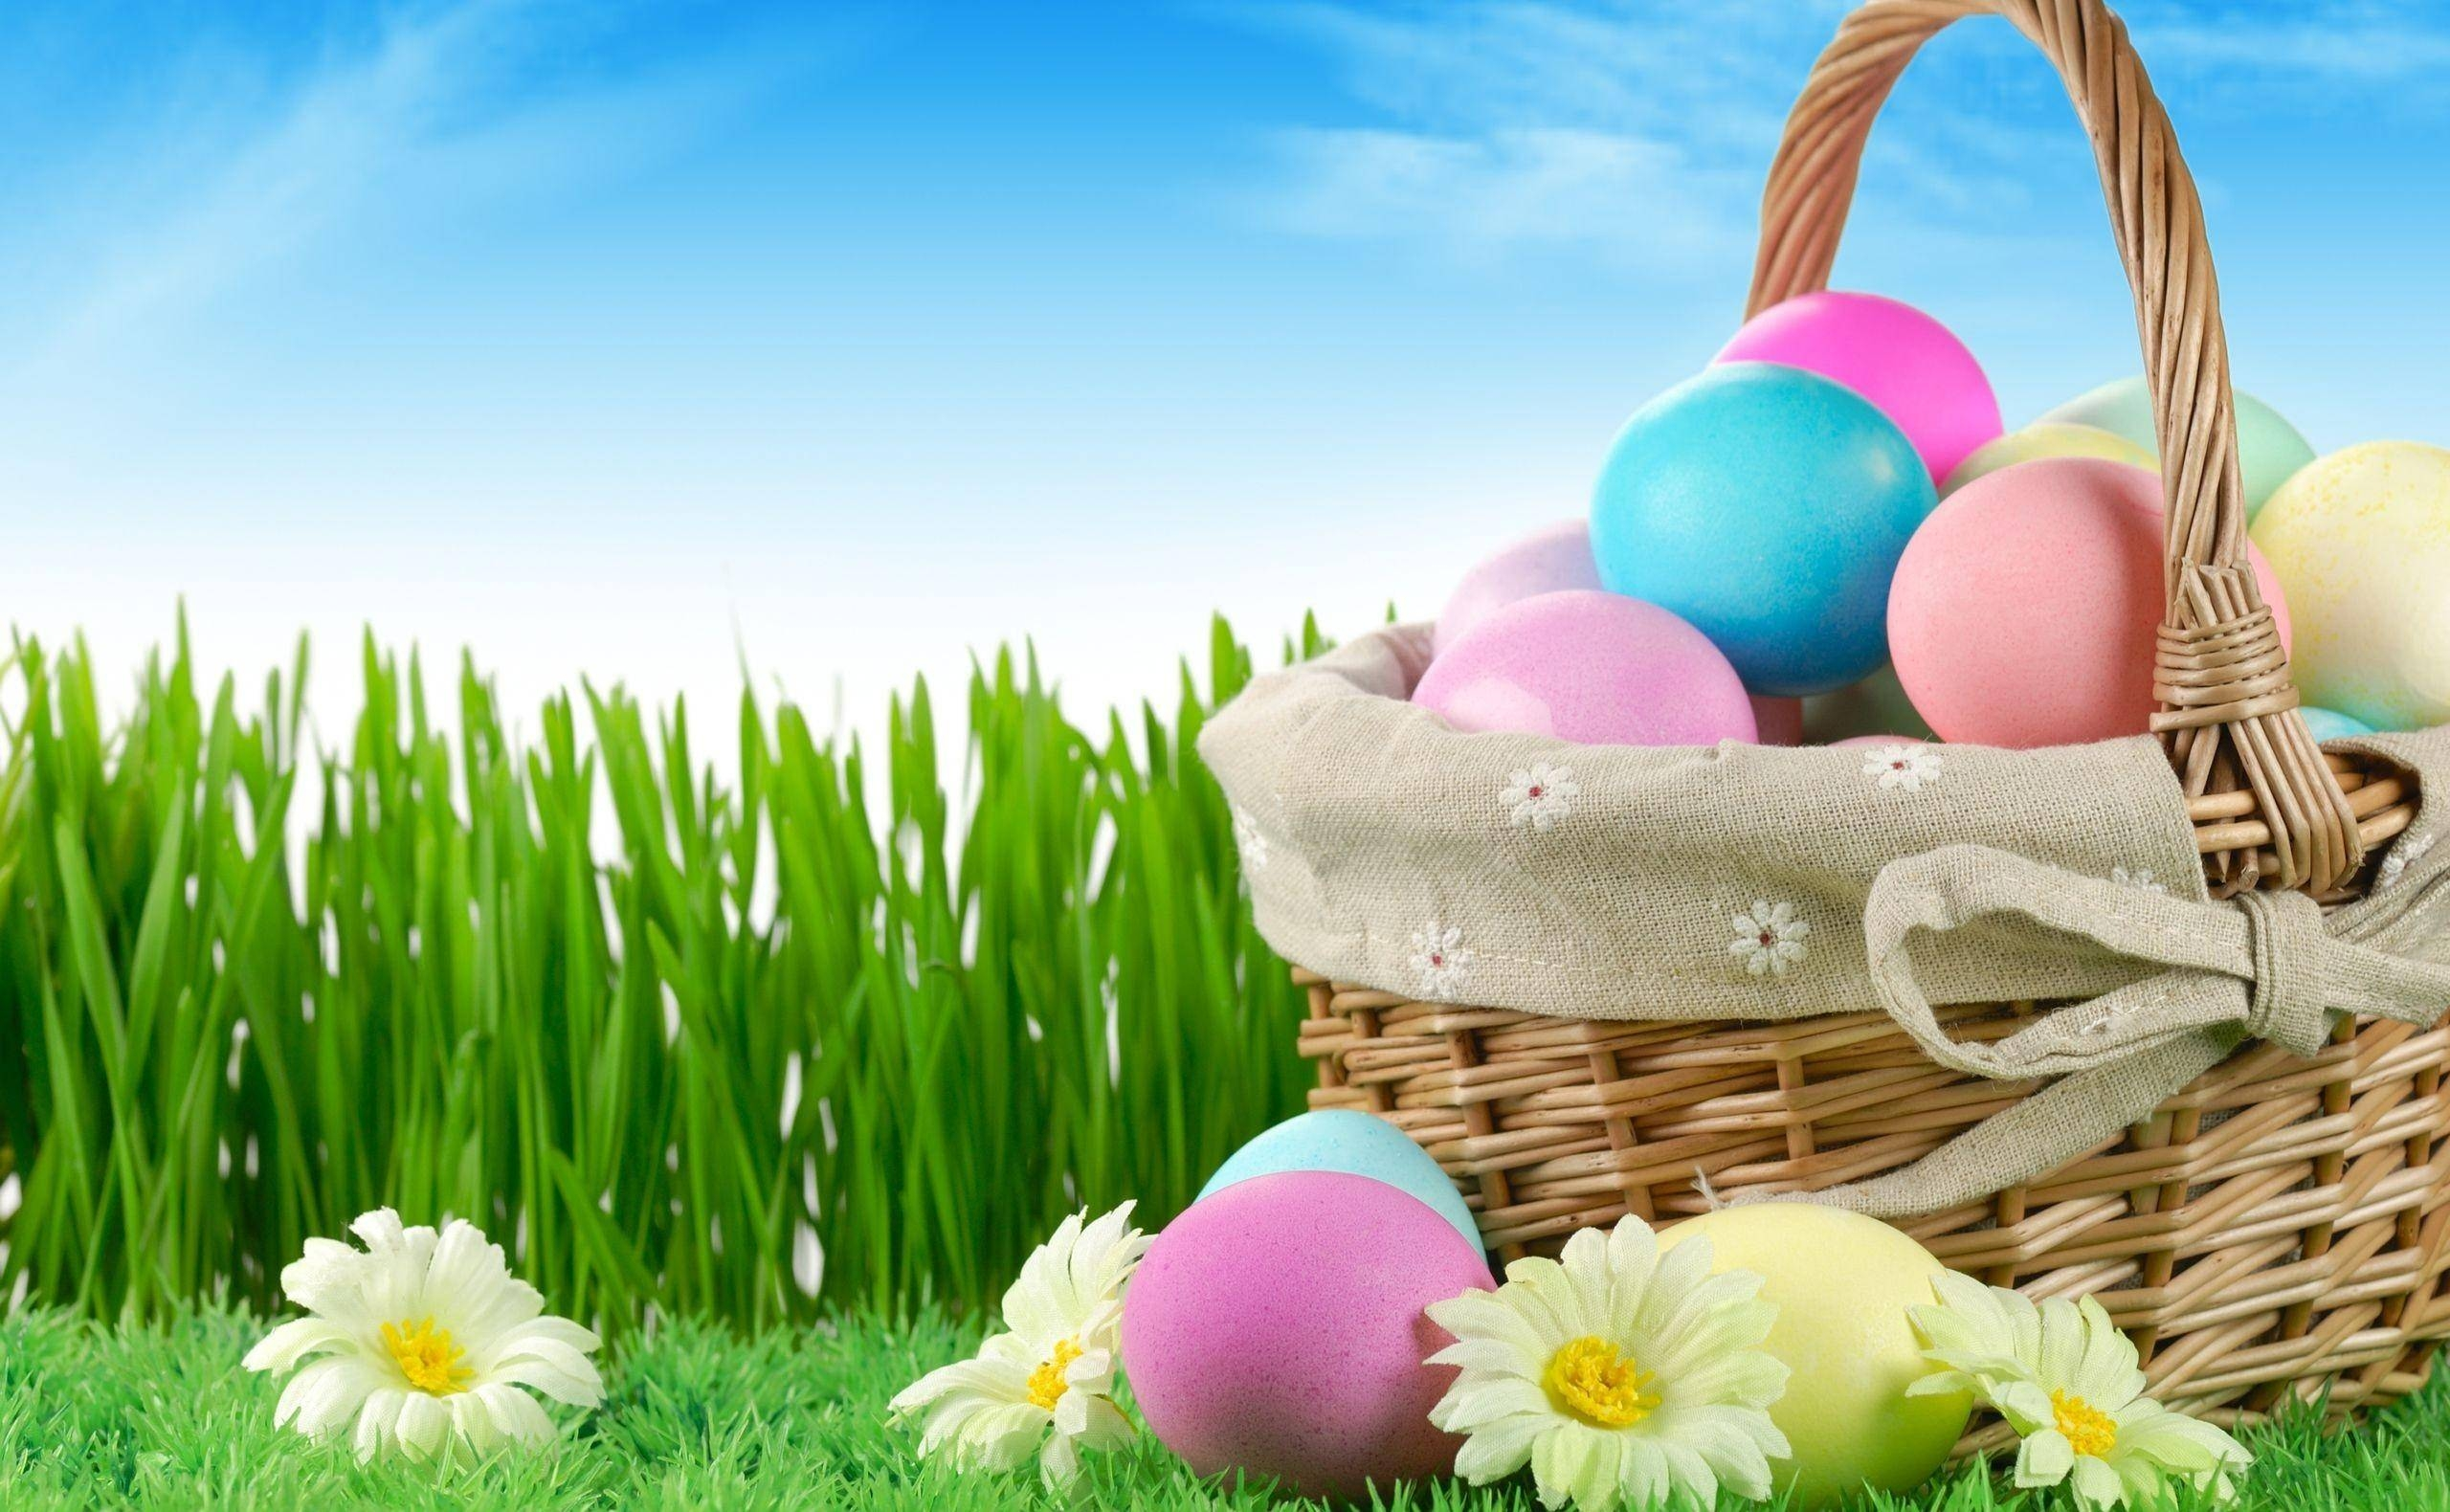 20 happy easter wallpapers backgrounds images